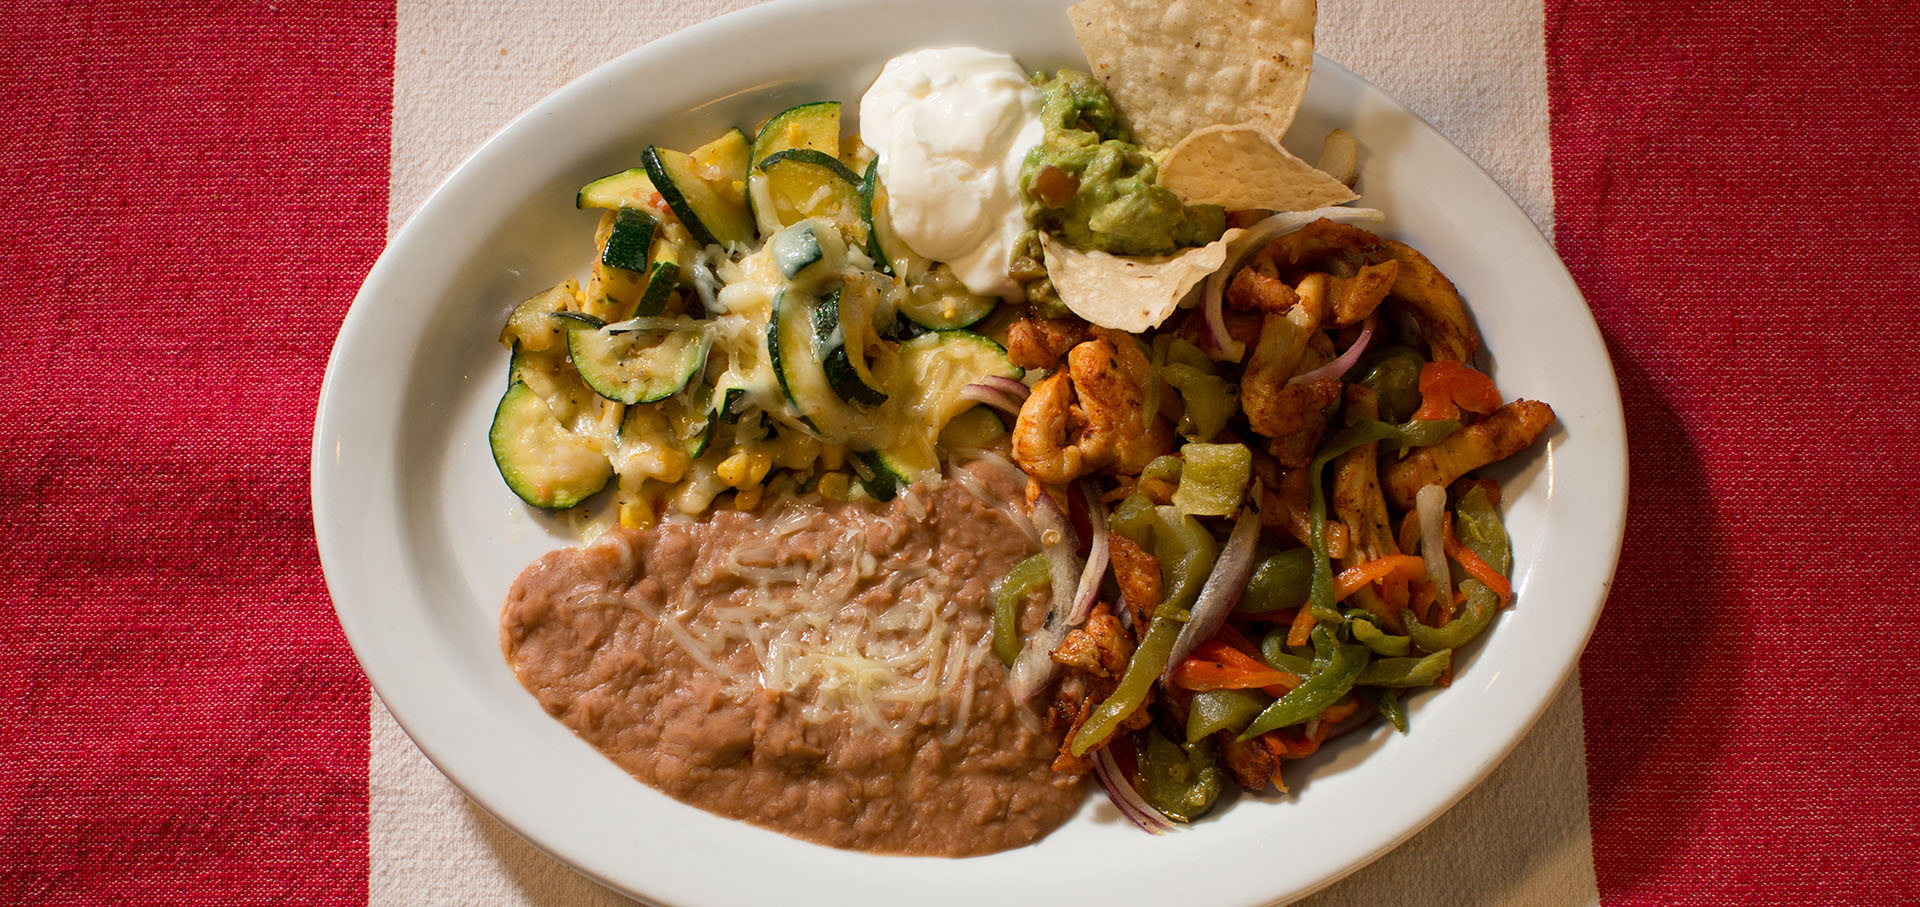 Chicken Fajitas: one of Teresa's Mosaic Cafe's most popular dishes